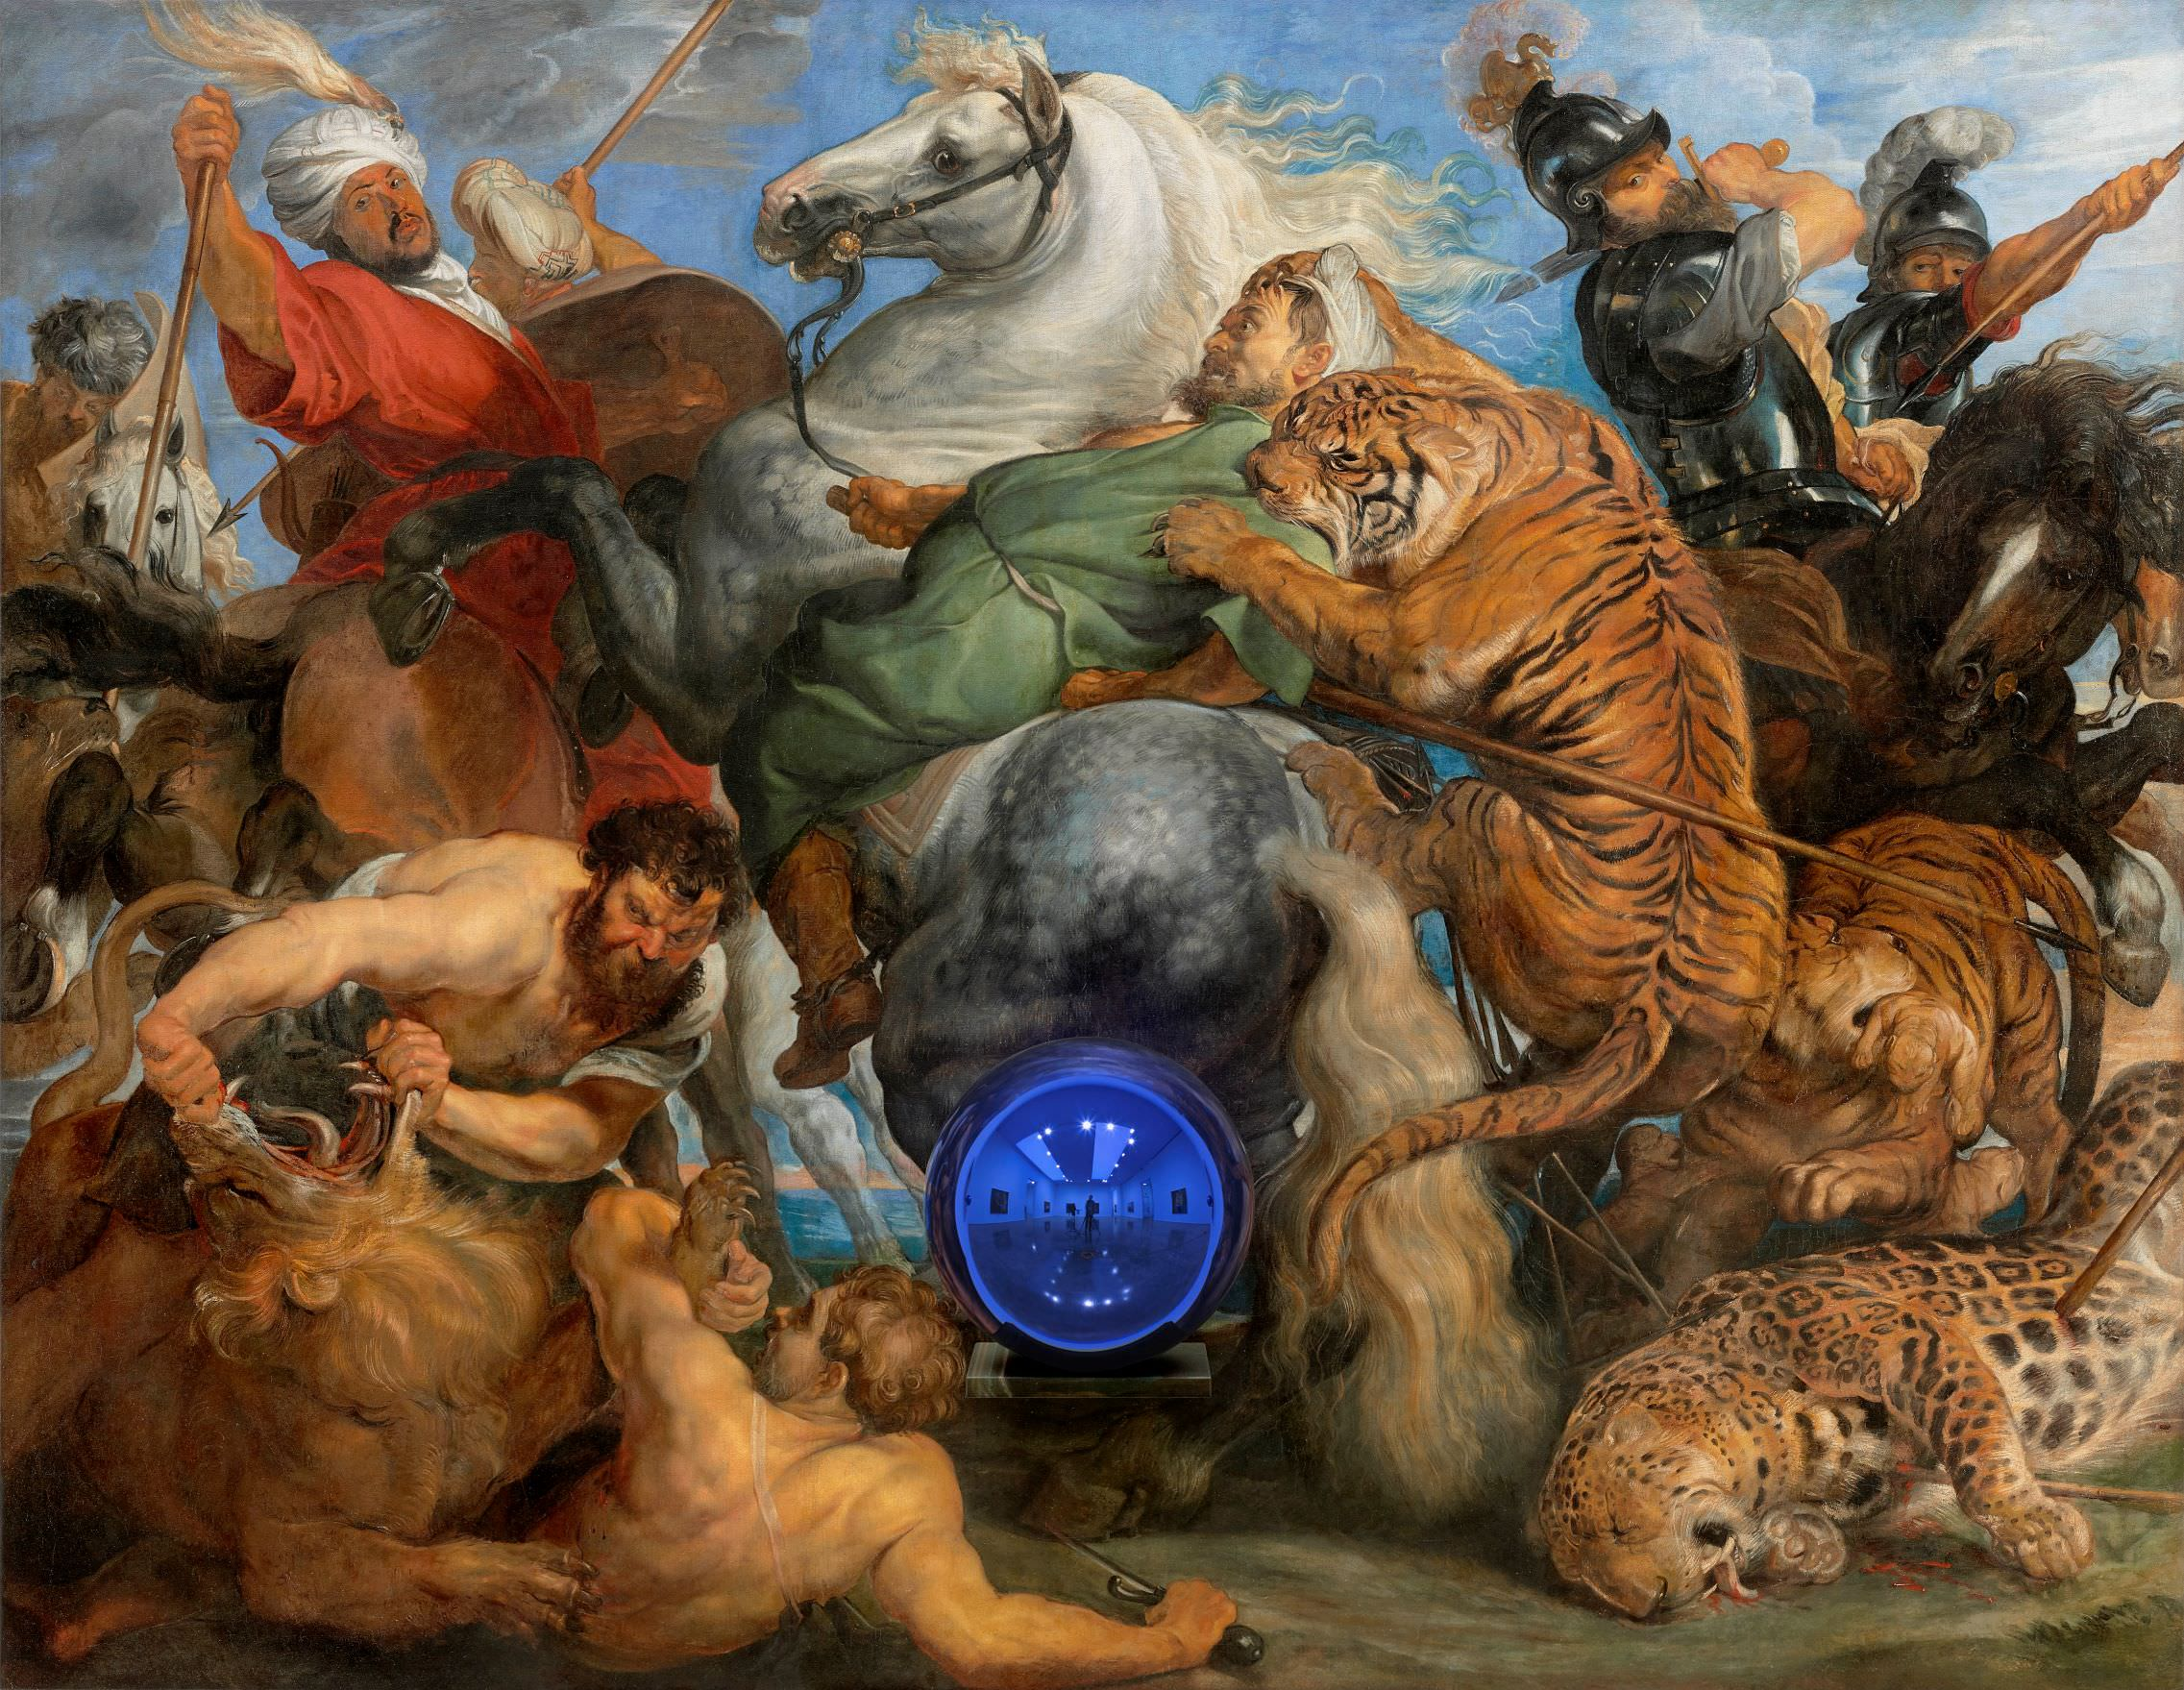 Jeff Koons (b. 1955); Gazing Ball (Rubens Tiger Hunt); 2015; Oil on canvas, glass, and aluminium; 163.8 x 211.1 x 37.5 cm; Collection of the artist © Jeff Koons. Photo: Tom Powel Imaging. Courtesy Gagosian